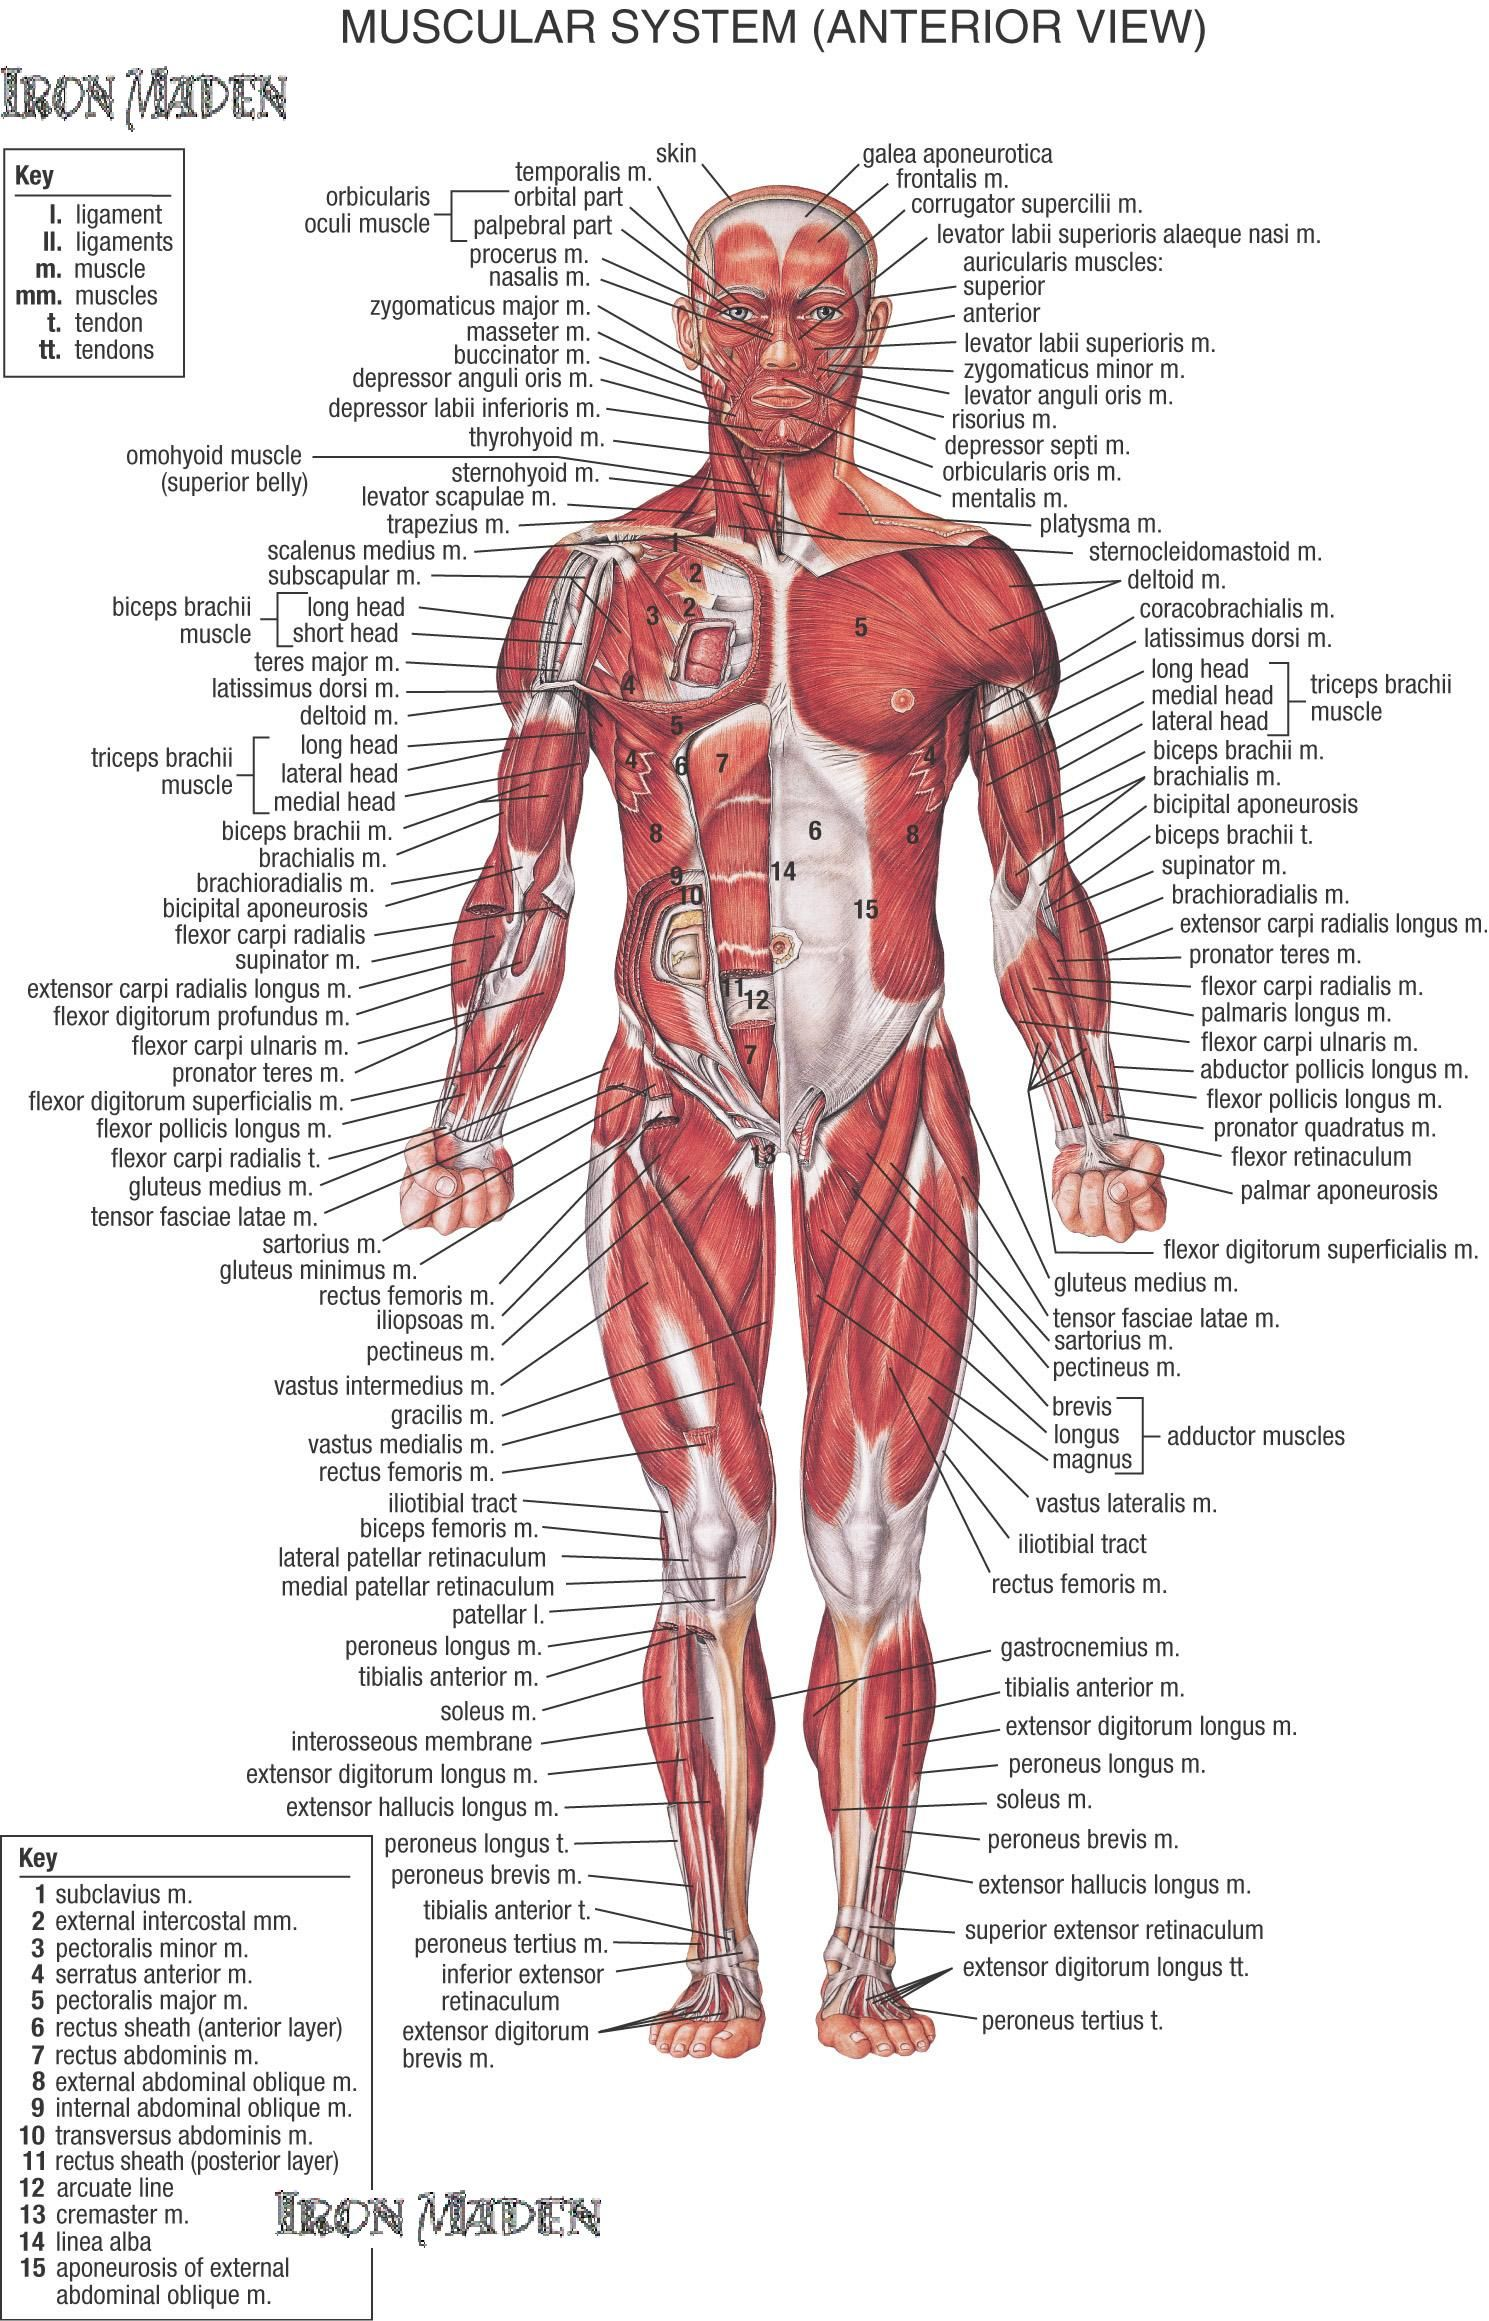 muscular system MEDICAL EDUCATIONAL POSTER 24X36 scientific BODY ...